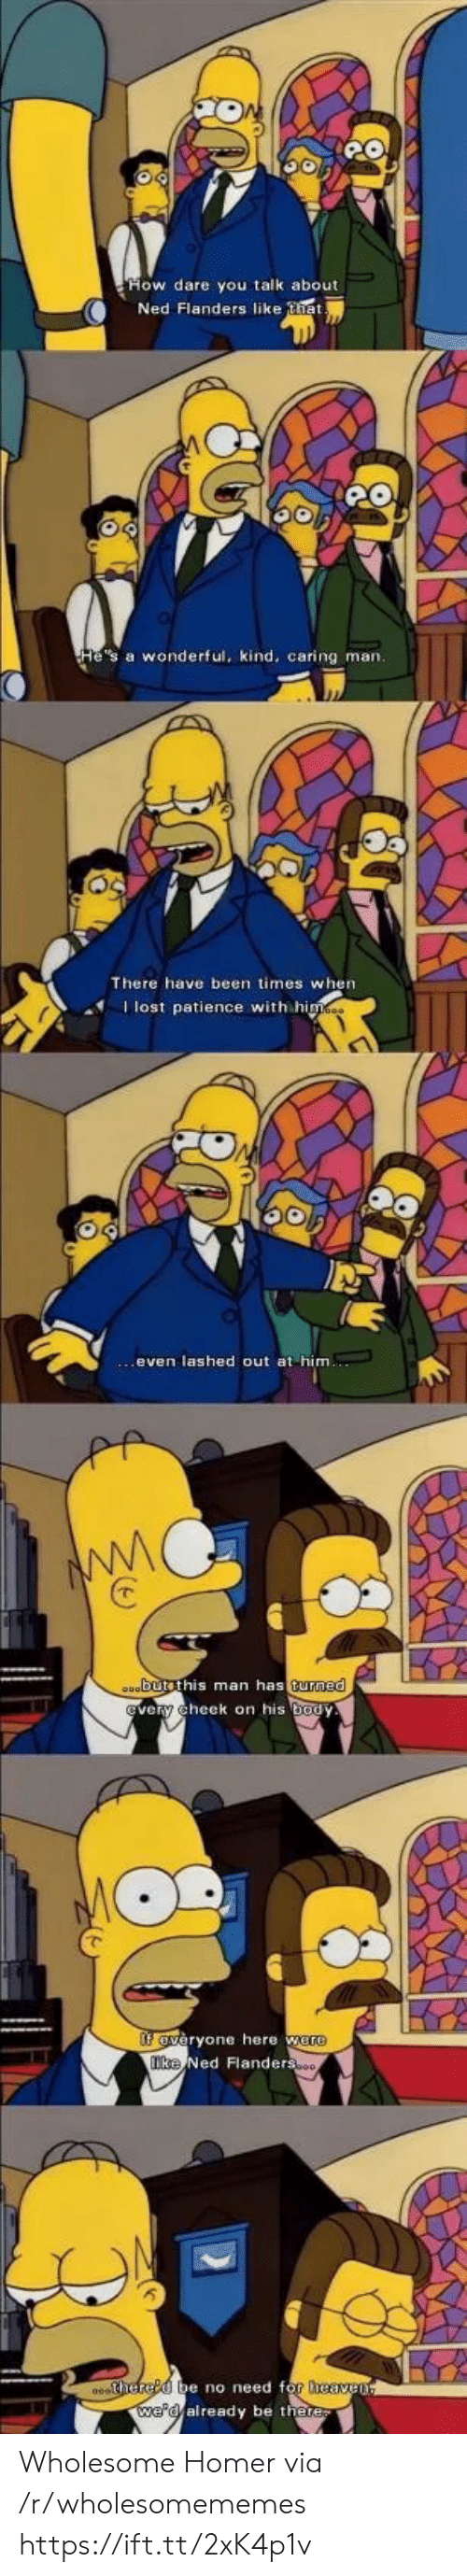 Wholesome: Ned Flanders like tia  He's a wonderful, kind, caring man.  There have been times when  Ilost patience with himes  oabutsthis man has turned  very cheek on his body  fveryone here were  Tke Ned Flanderso  0ehered be no need for heaven  we'd already be there Wholesome Homer via /r/wholesomememes https://ift.tt/2xK4p1v